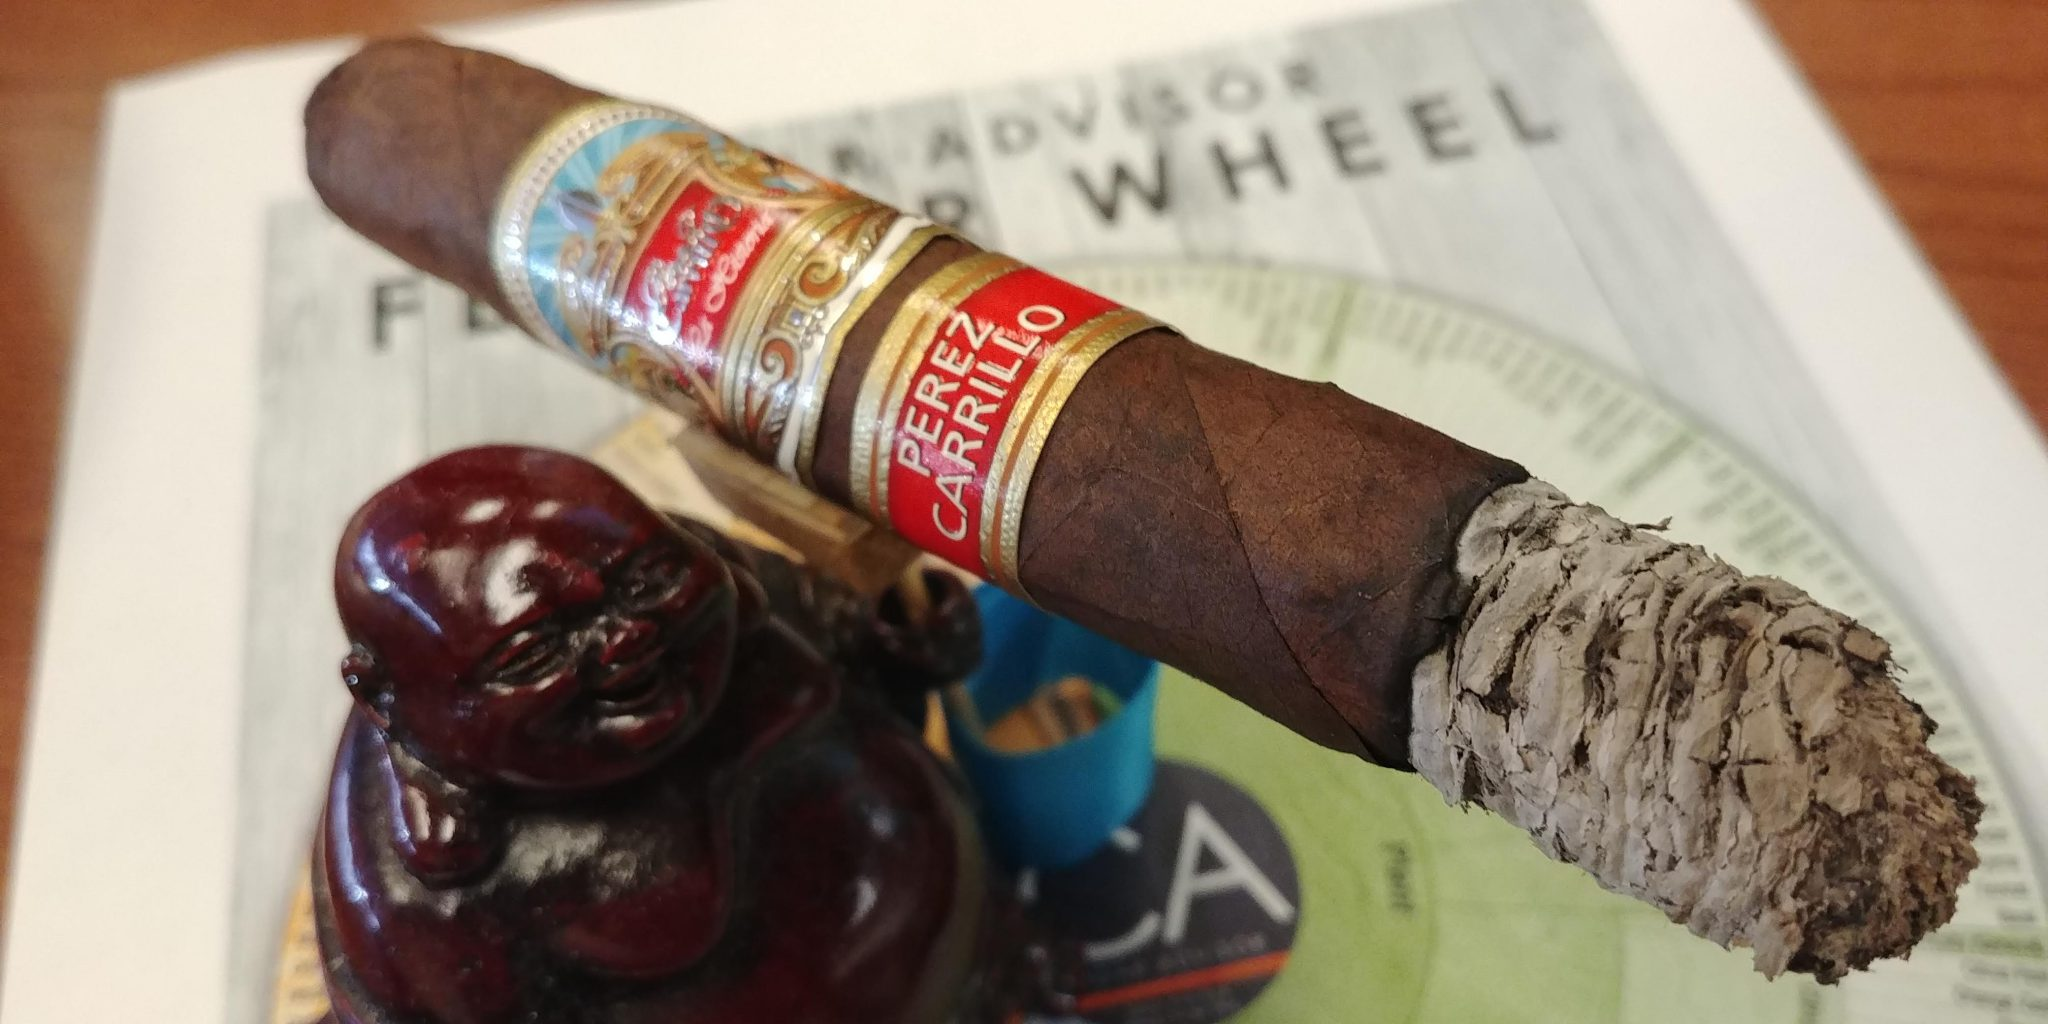 EPC EP Carrillo Cigars Guide EP Carrillo La Historia cigar review by John Pullo